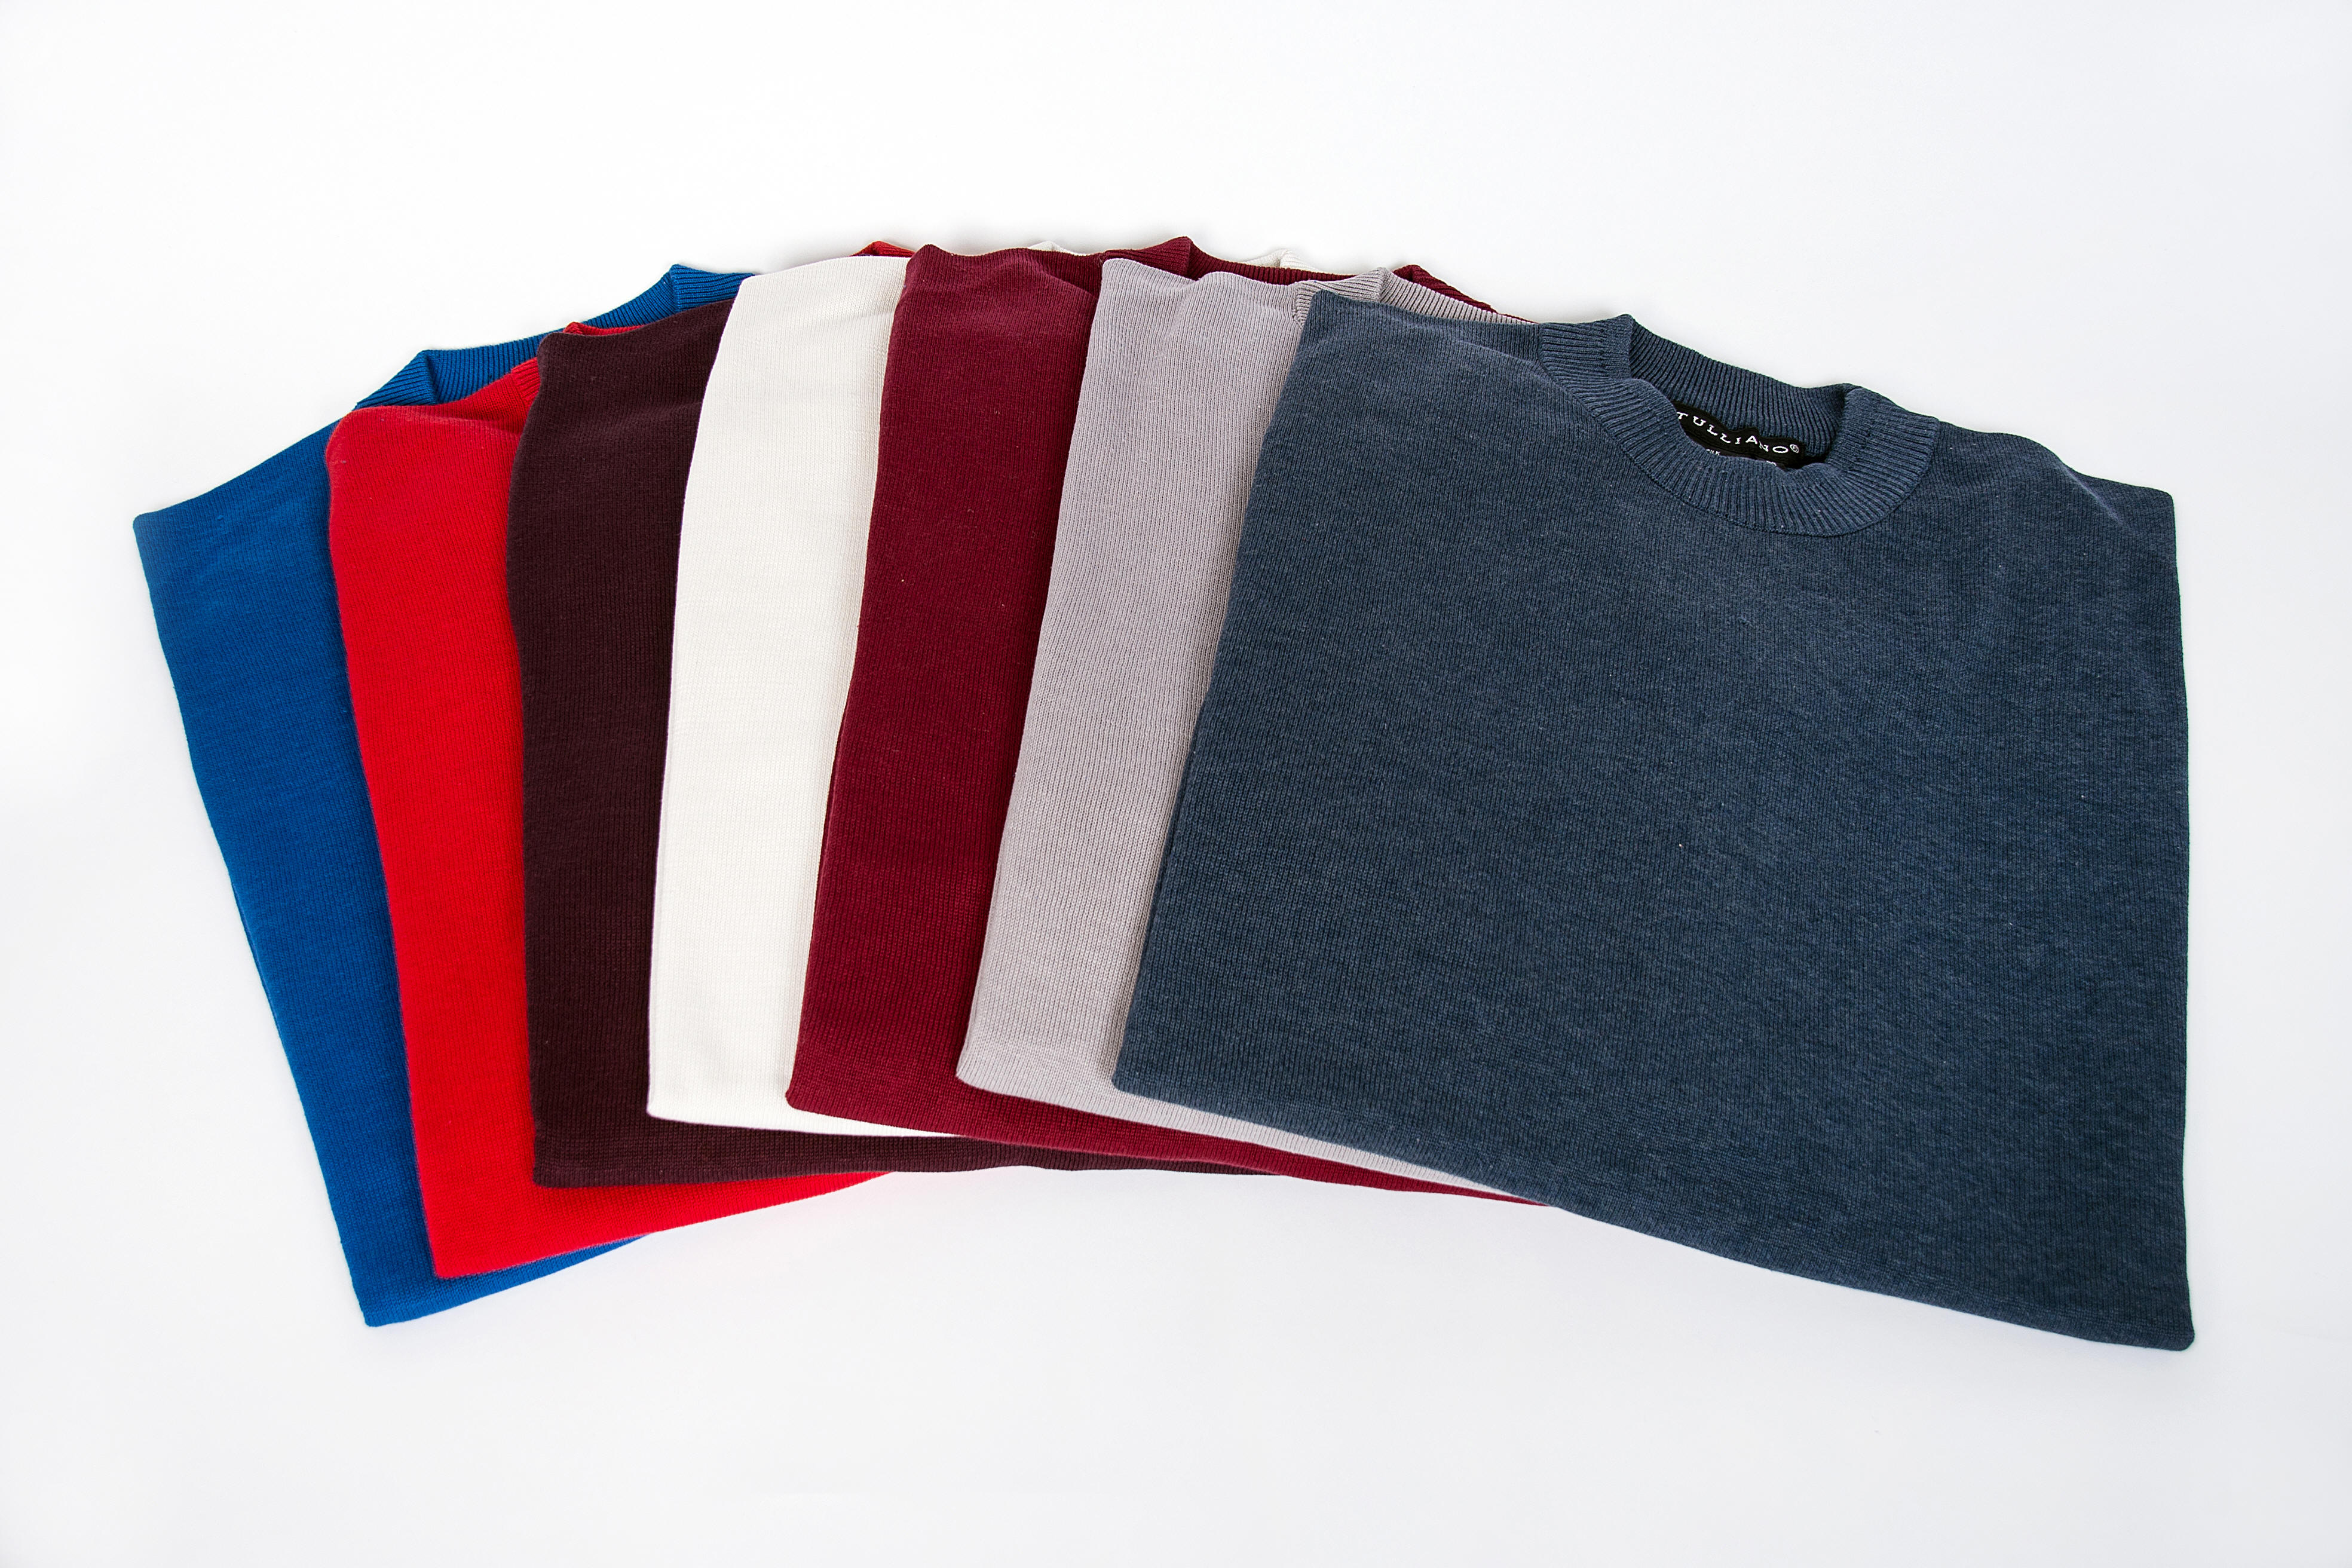 Tulliano Silk Knit Mock Sweaters (4x-6x)